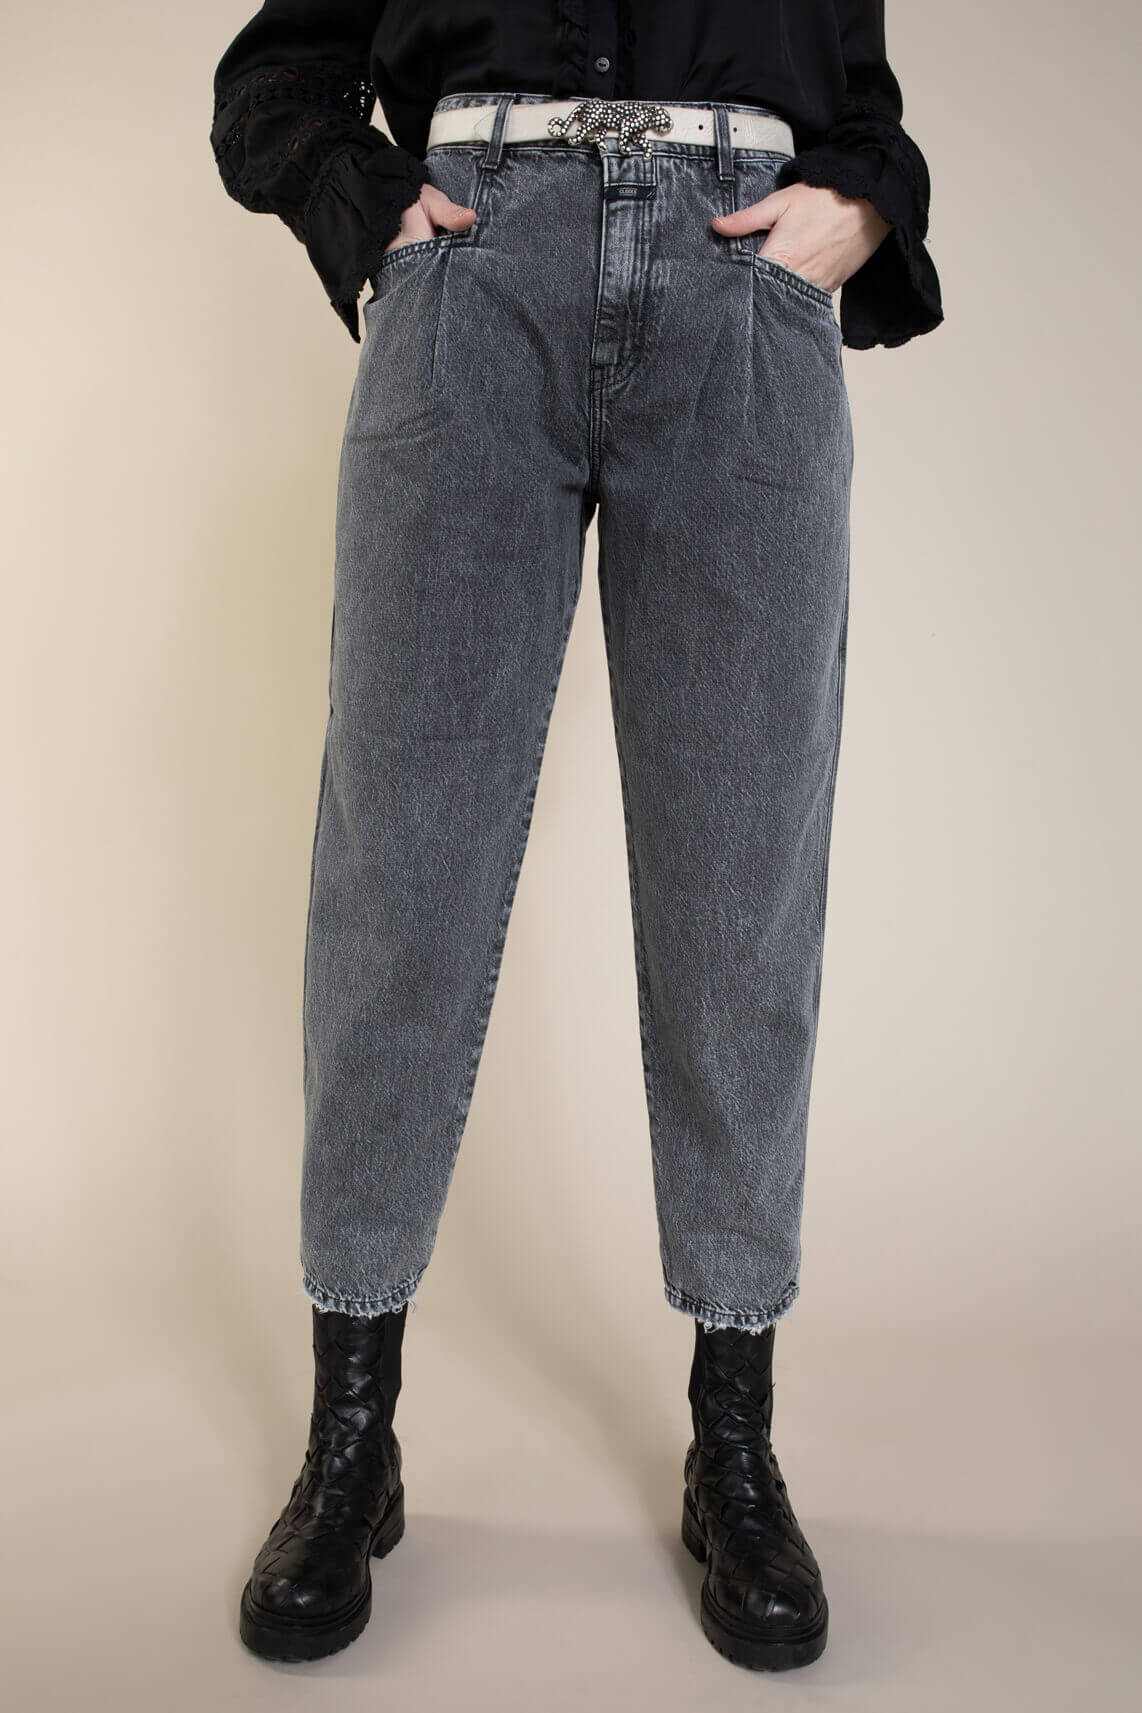 Closed Dames High-waist jeans Grijs